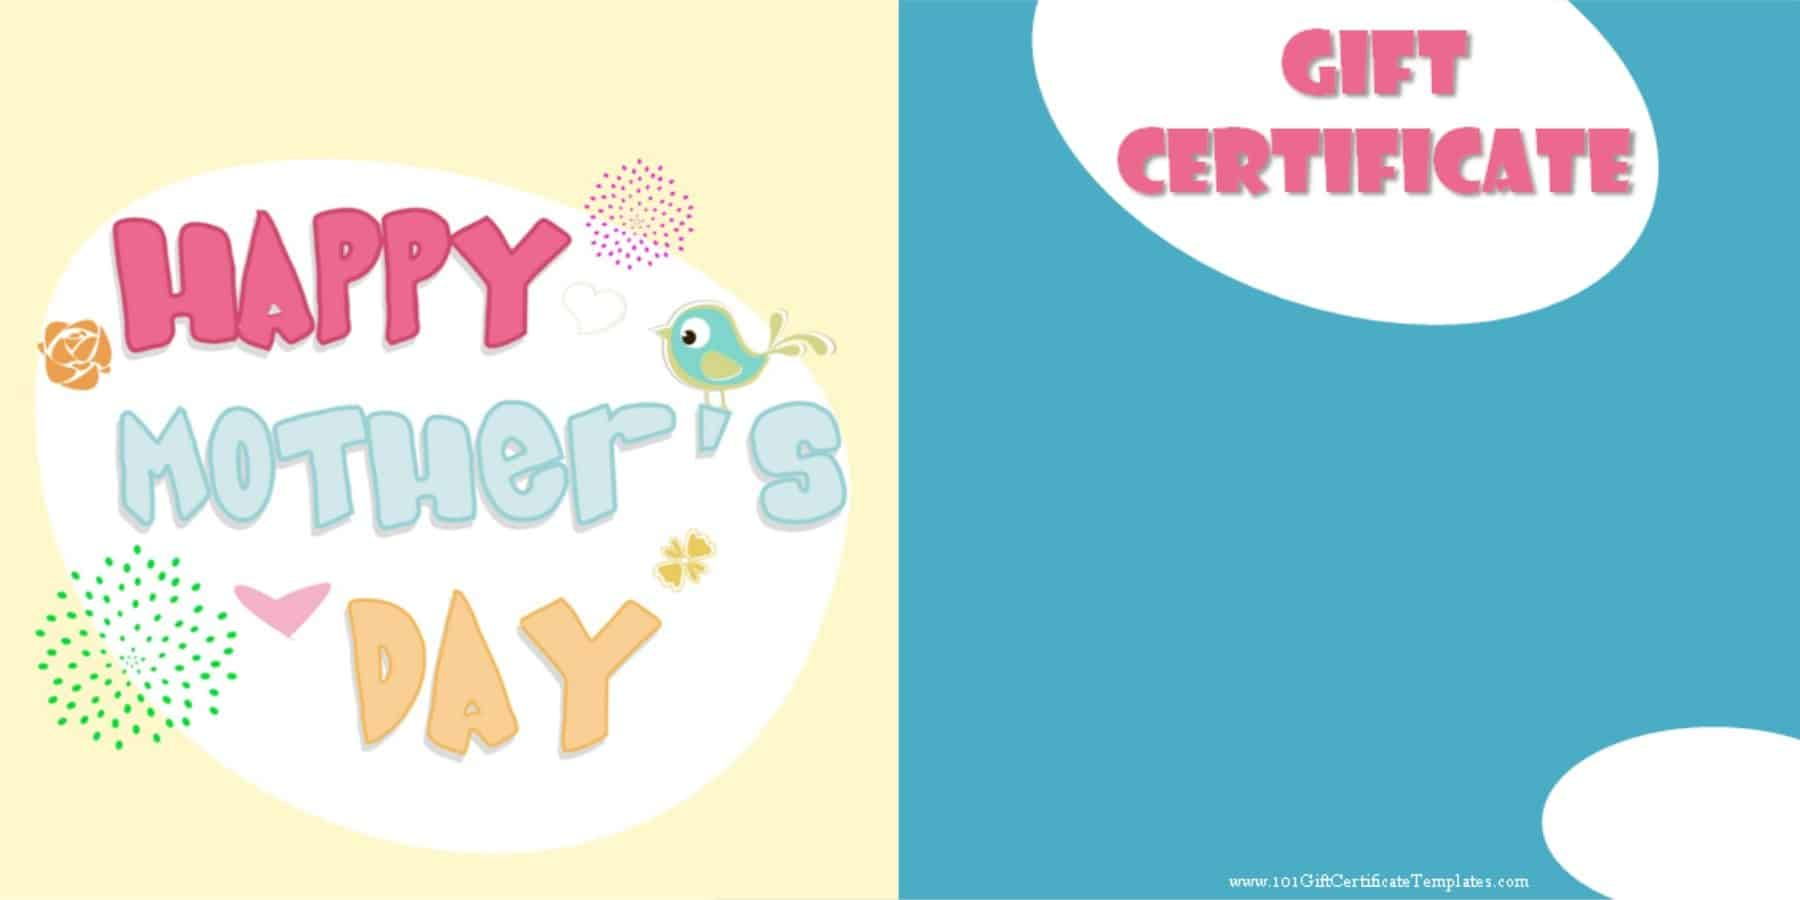 Mothers day gift certificate templates happy mothers day xflitez Gallery